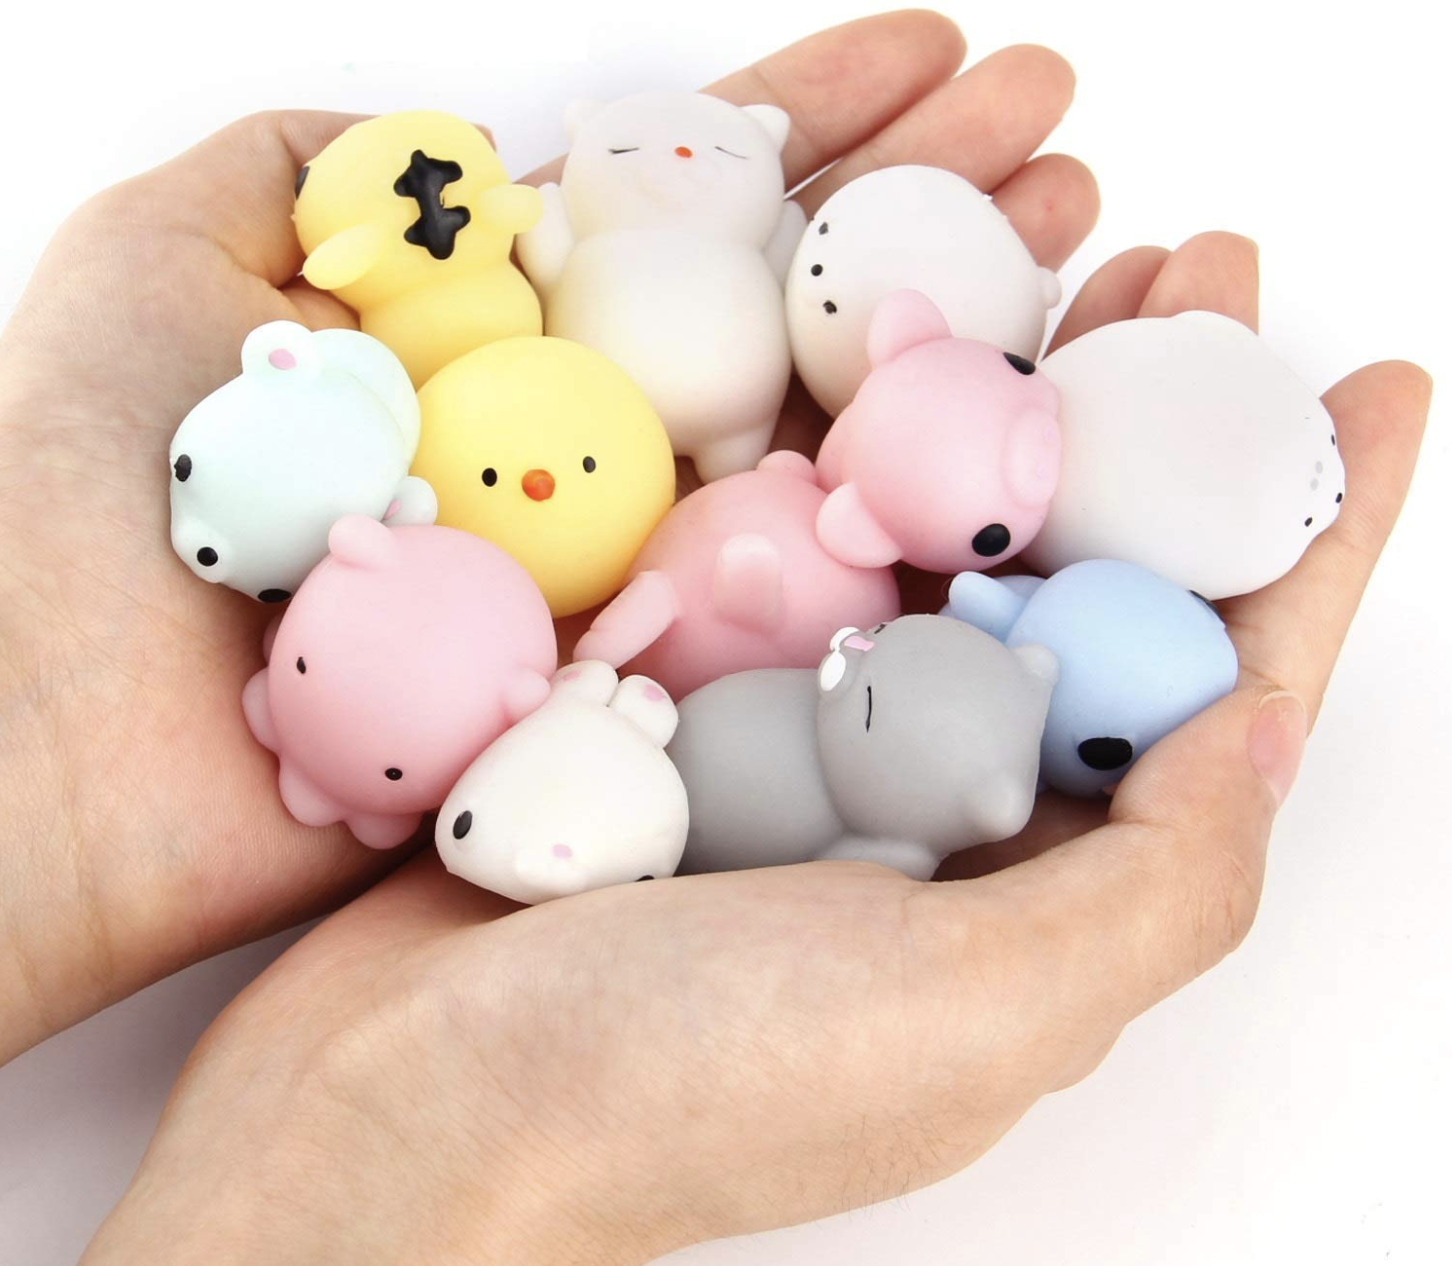 A model holding a handful of small squishies in the shapes of various animals